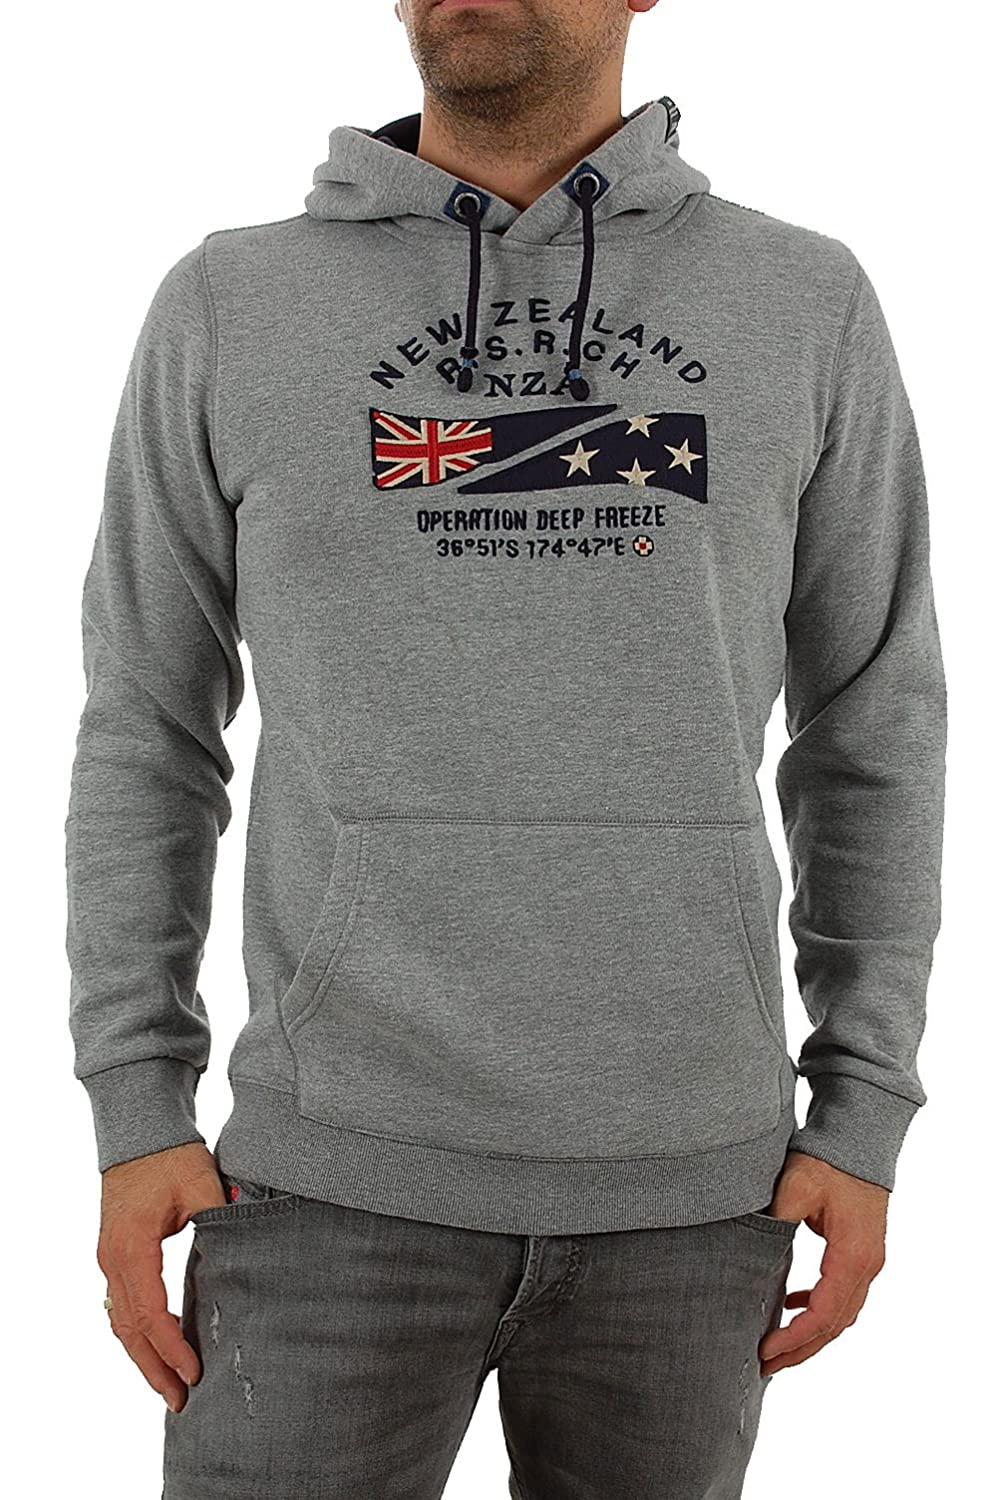 NZA New Zealand Auckland Herren Sweatshirt 16GN302 GARRY